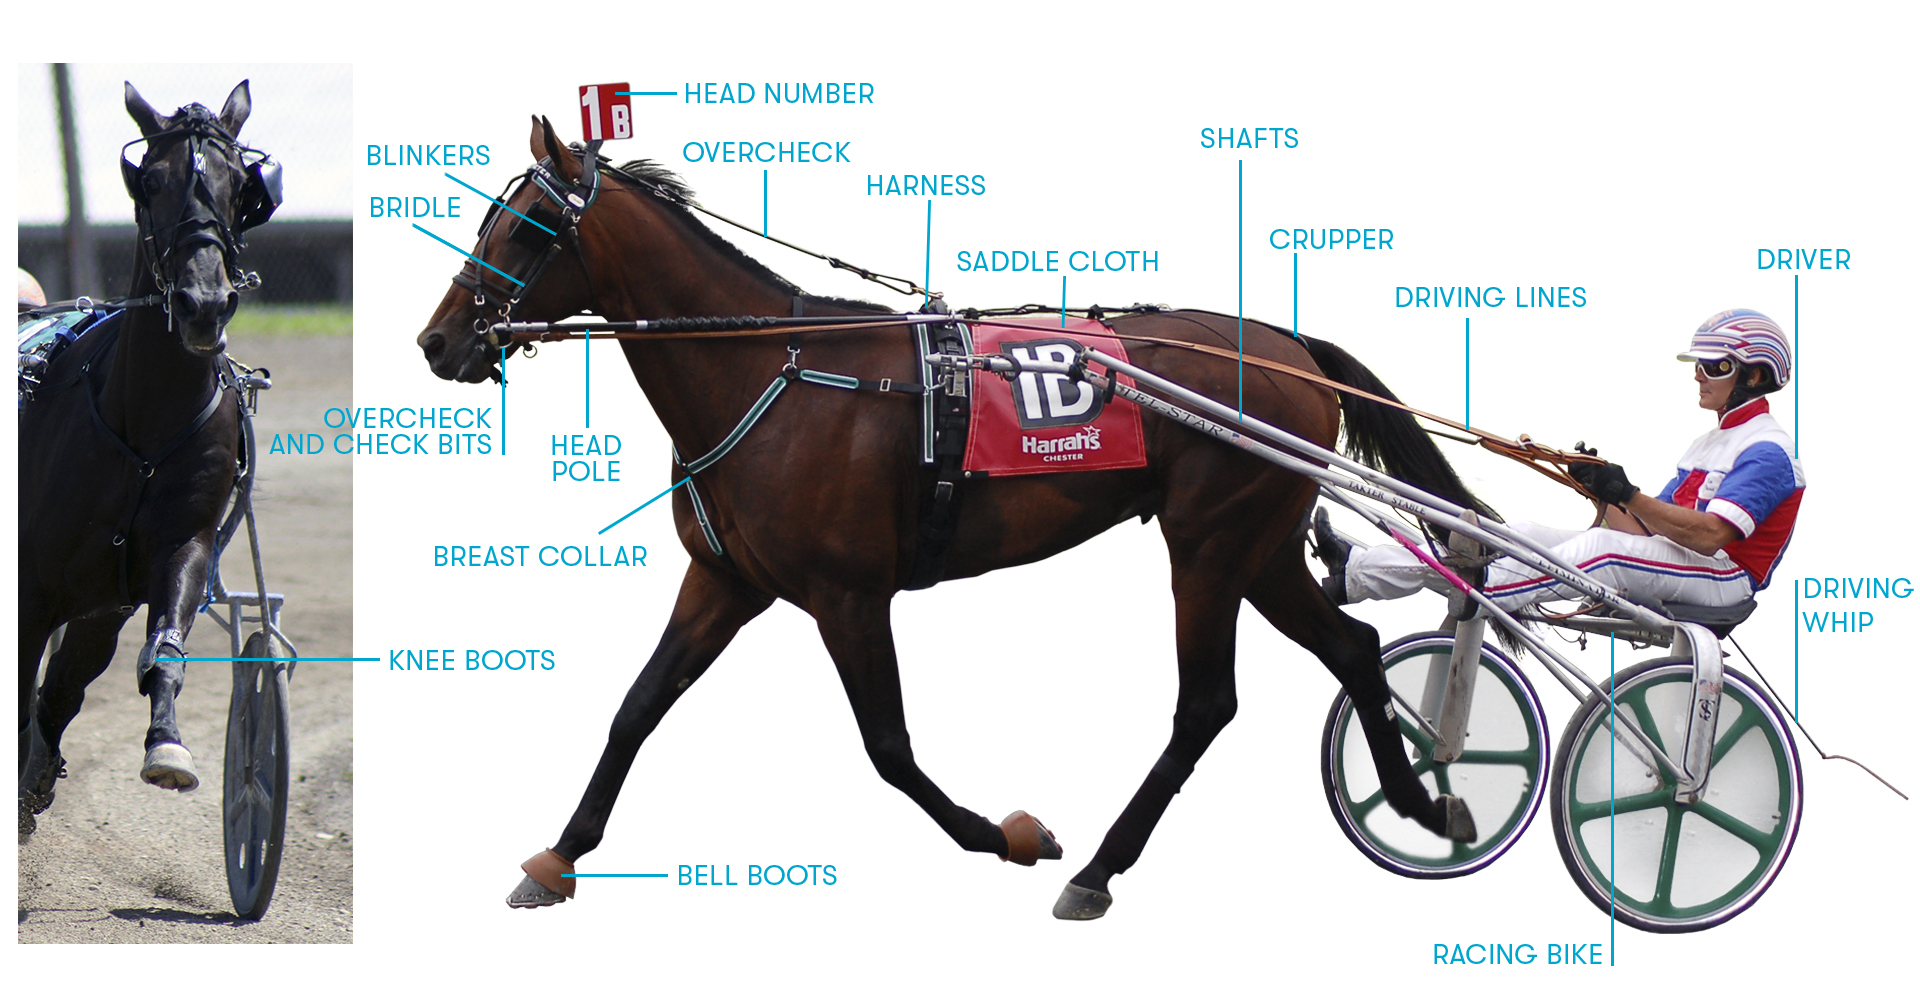 Image left shows Knee Boots. Image right shows horse facing left with Brindle, Overcheck and Check Bits, Blinkers, Head Number, Head Pole, Breast Collar, Bell Boats, Overcheck, Harness, Saddle Cloth, Shafts, Crupper, Driving Lines, Racing Bike, Driver, Driving Whip